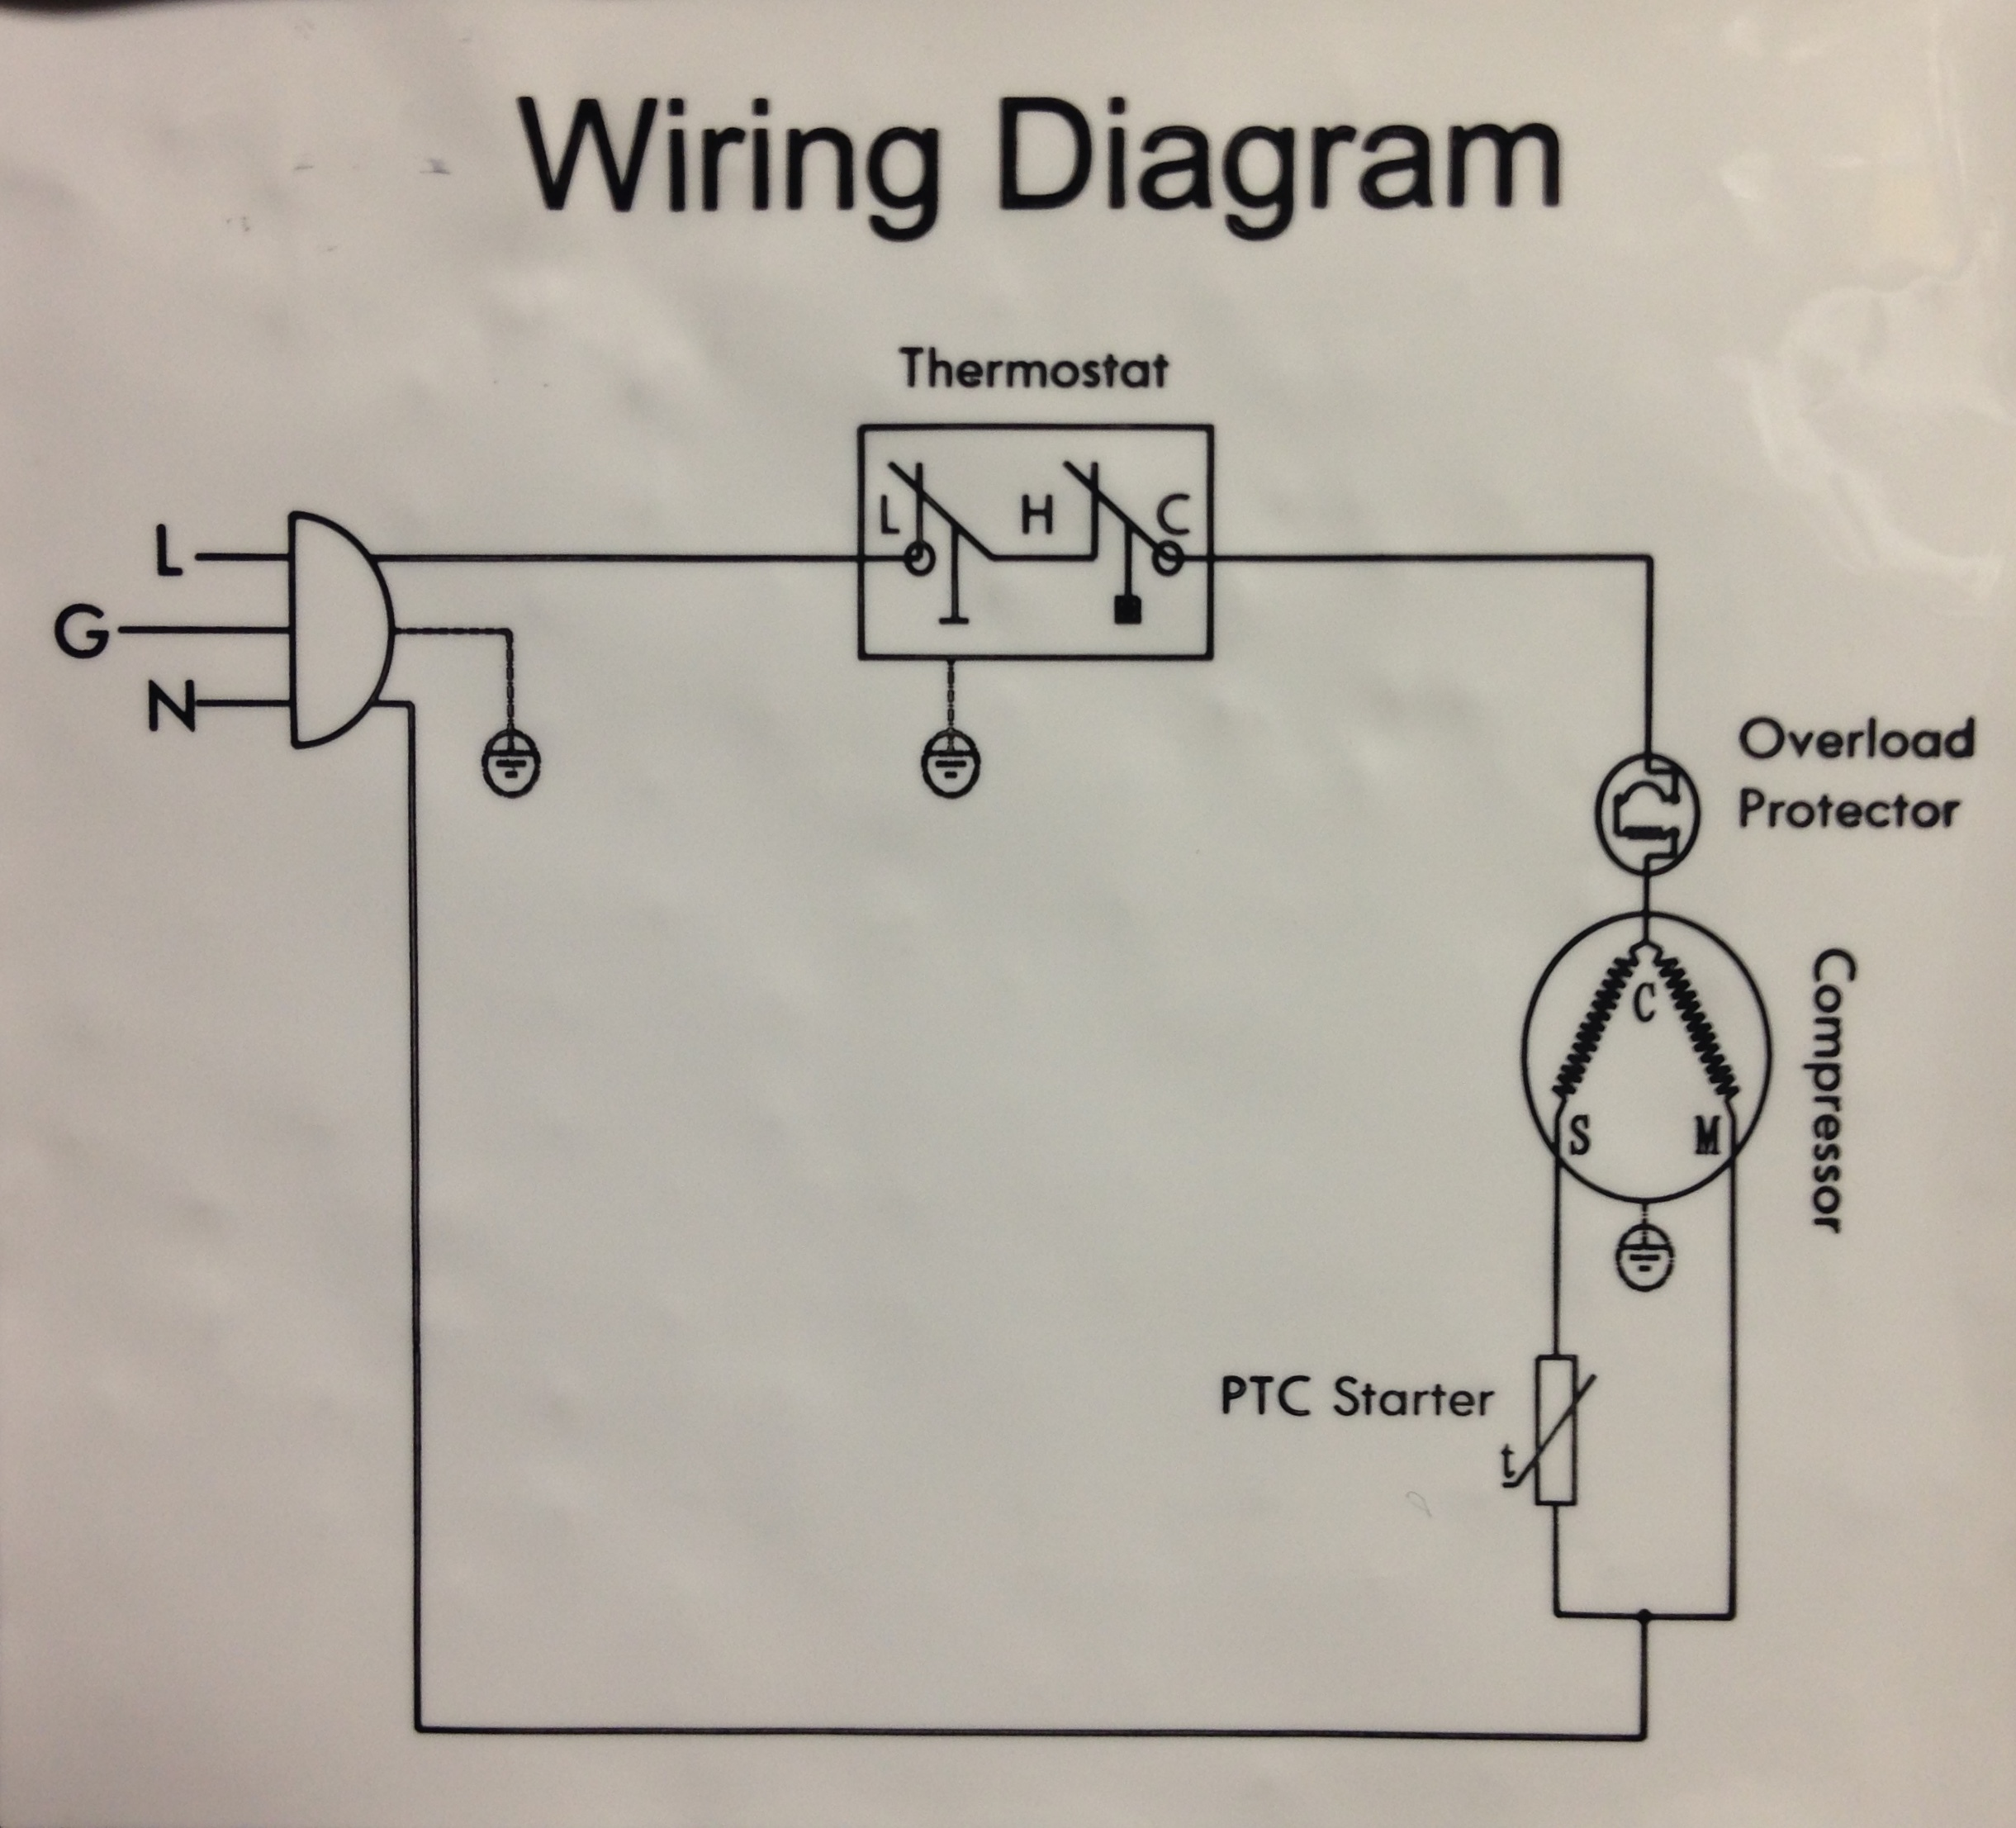 c5986337b4249150884d4e057ccb08b32fe4028e new build electronics newb diagram help fridge build brewpi pc wiring diagram at readyjetset.co